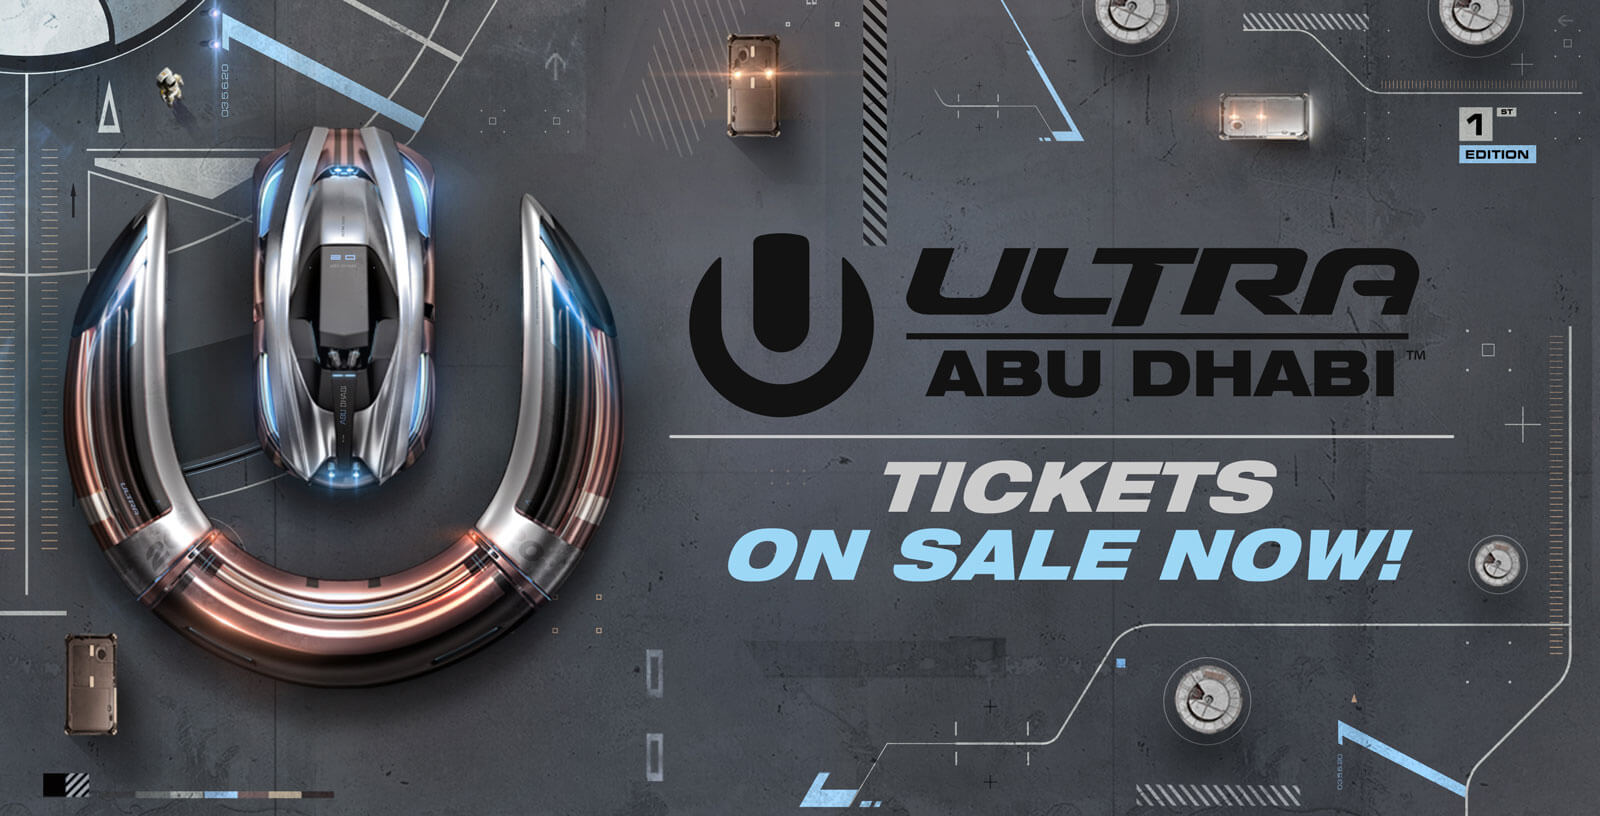 ULTRA Abu Dhabi 2020 Tickets On Sale Now!